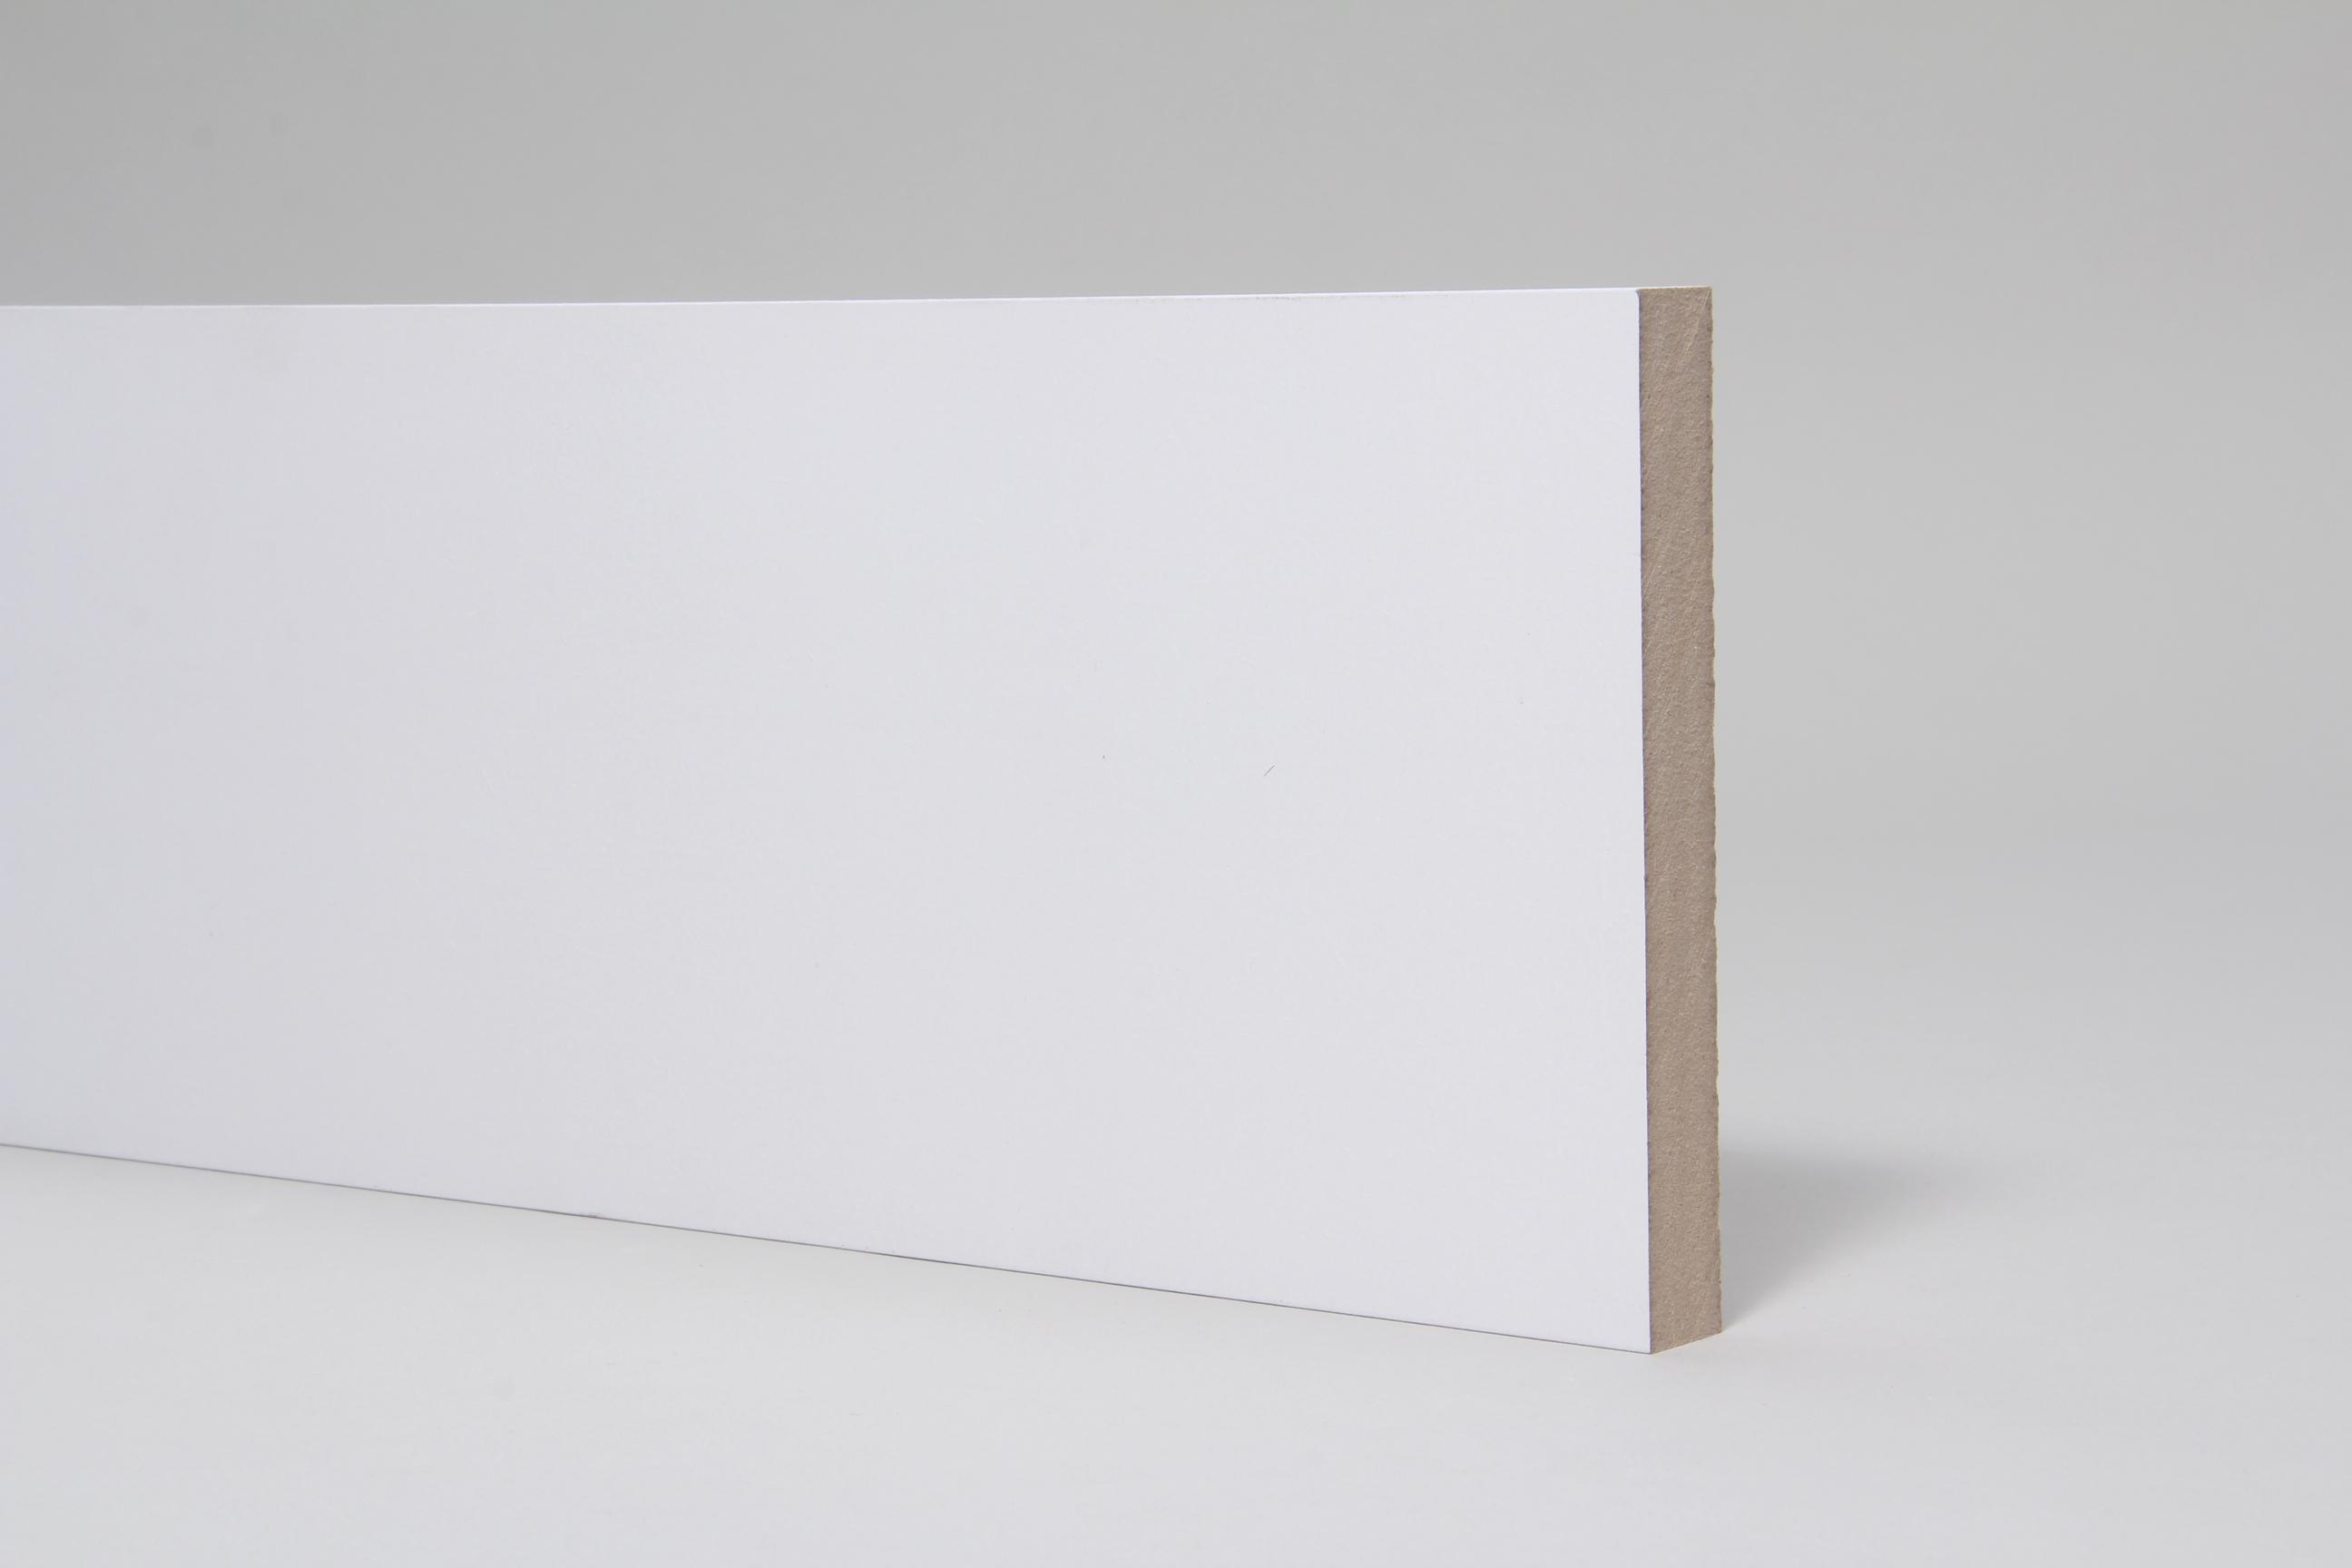 Plain Square Edge 18mm x 119mm x 4.4 Mtr Primed